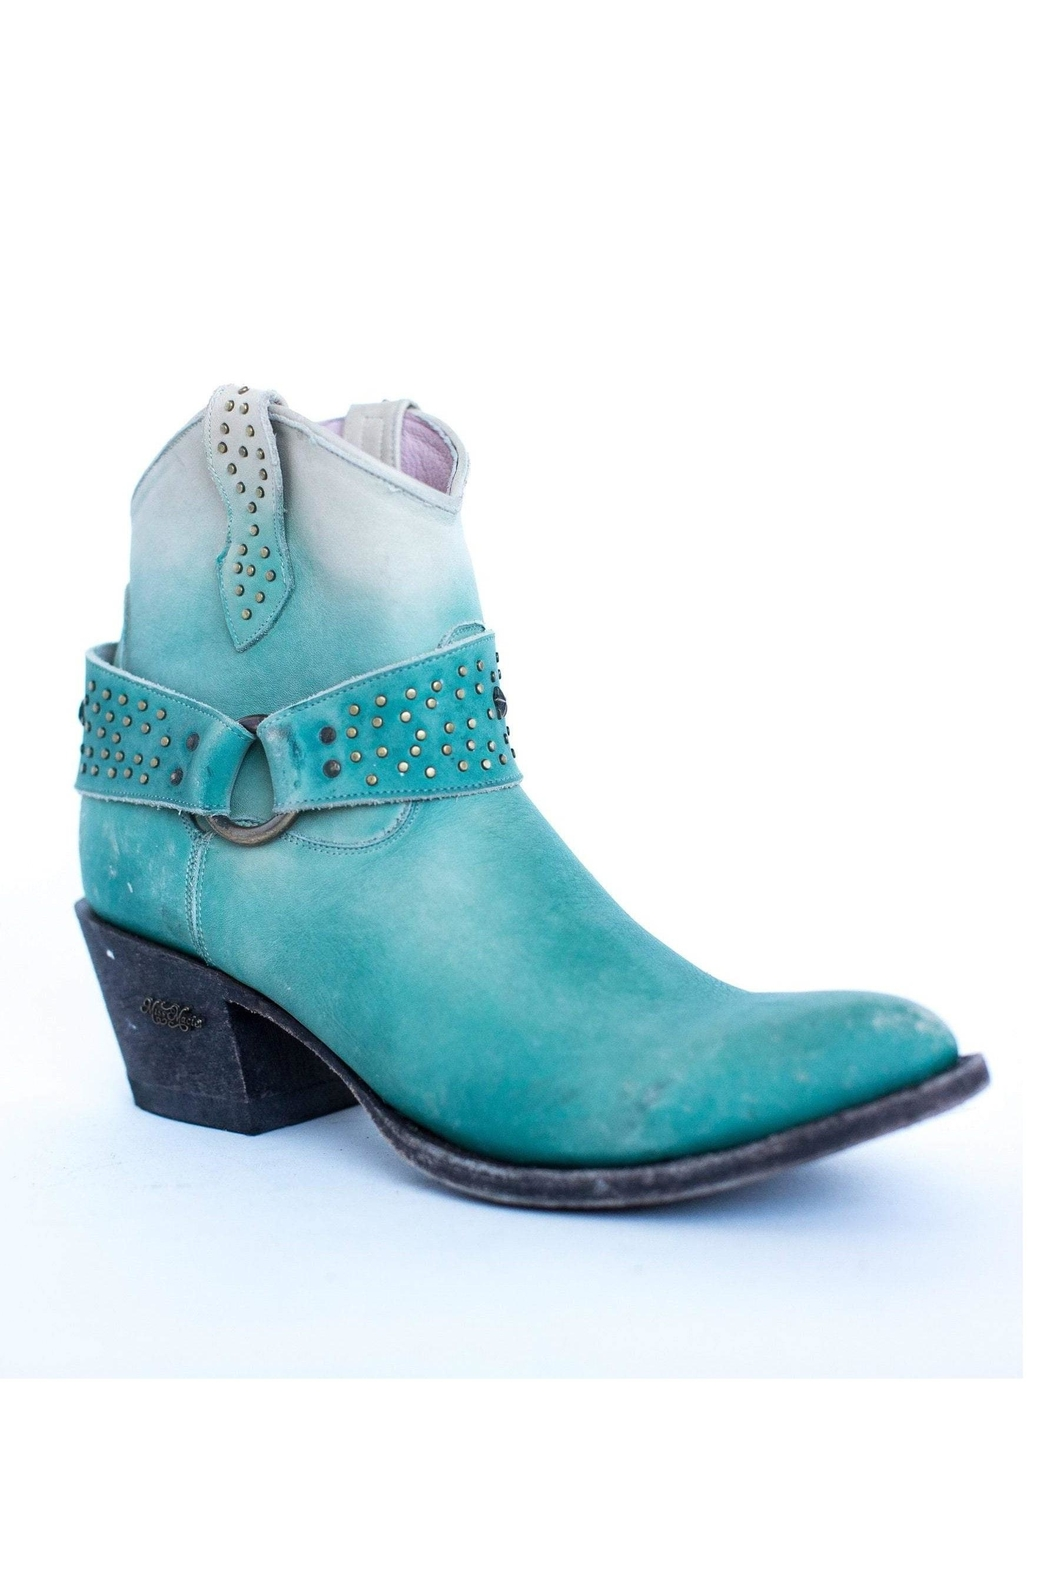 Miss Macie Boots Fine-N-Dandy Turquoise Bootie - Front Full Image